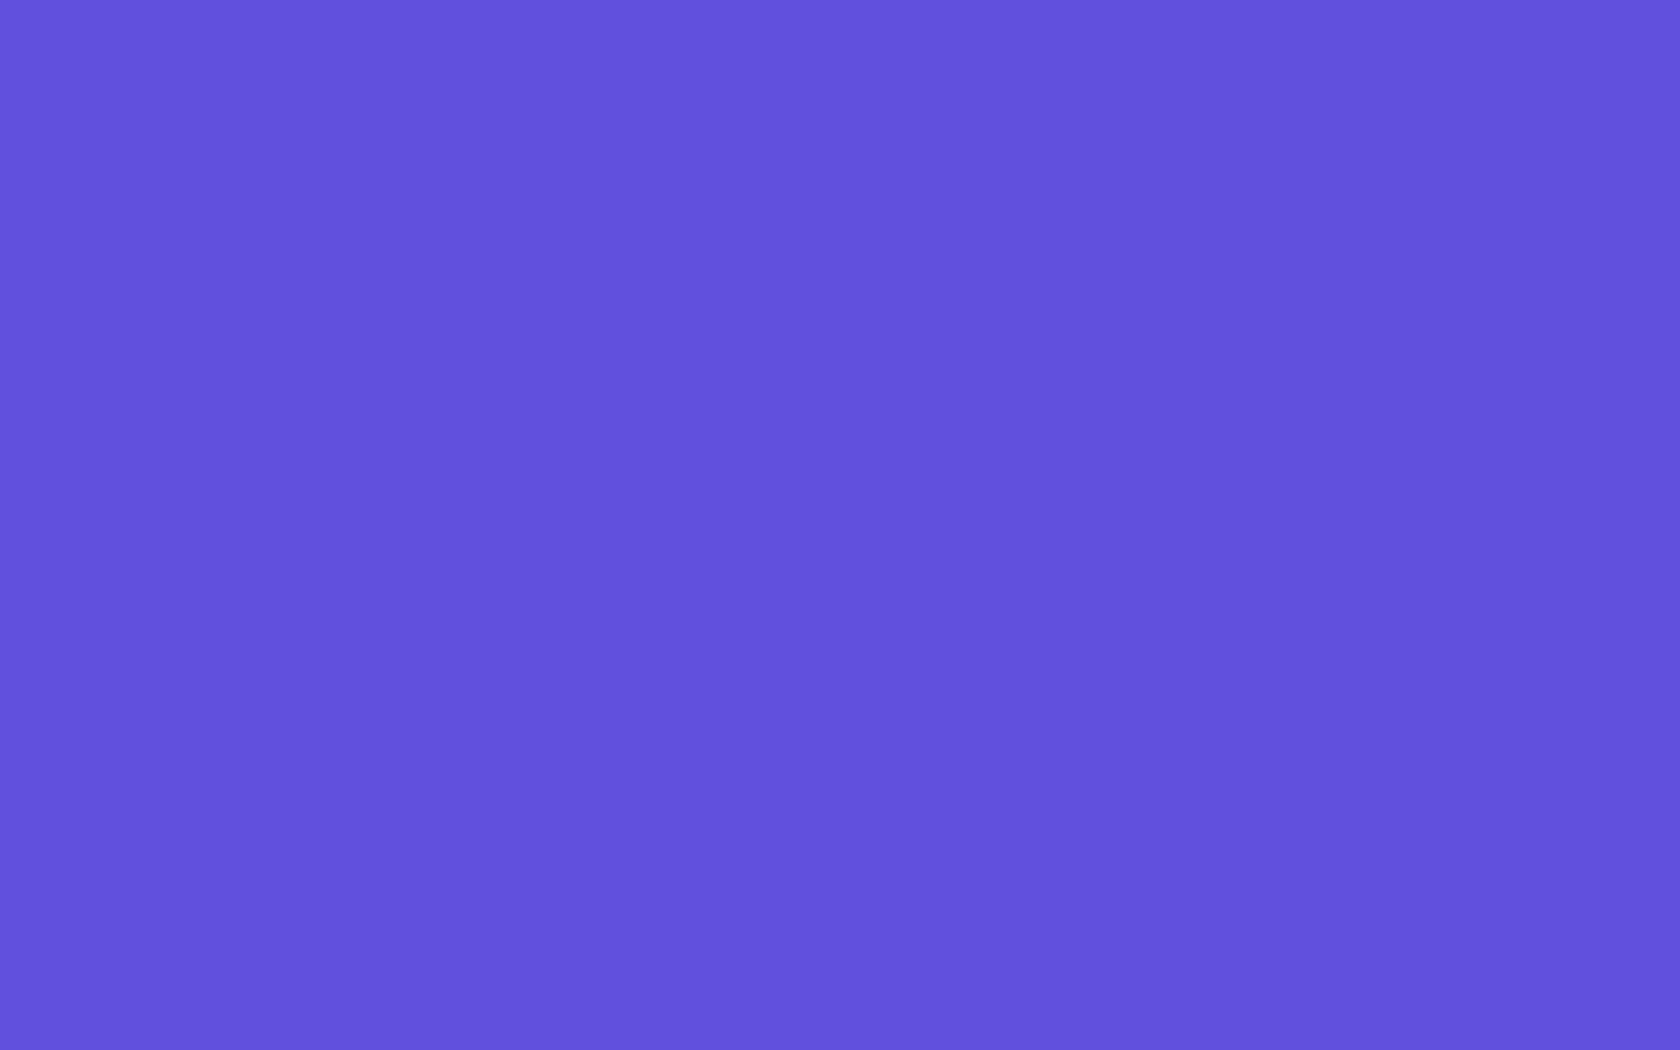 1680x1050 Majorelle Blue Solid Color Background